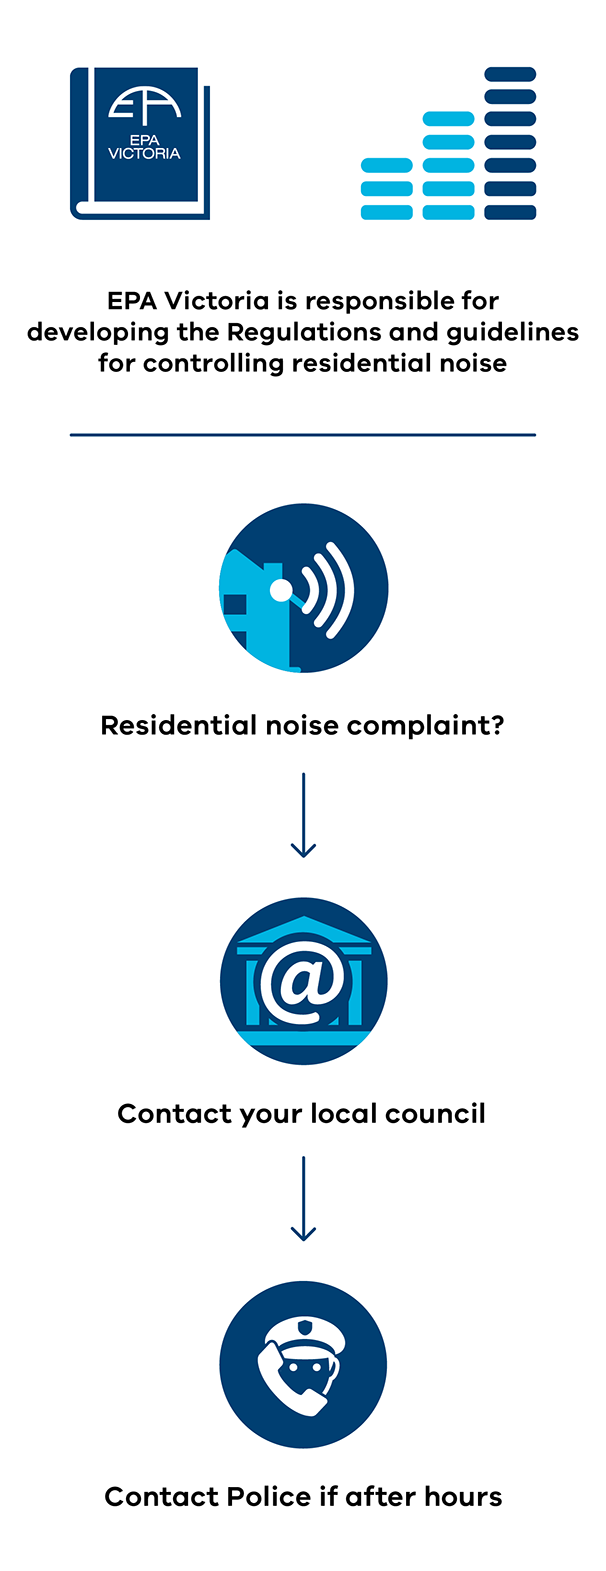 EPA's role in residential noise infographic